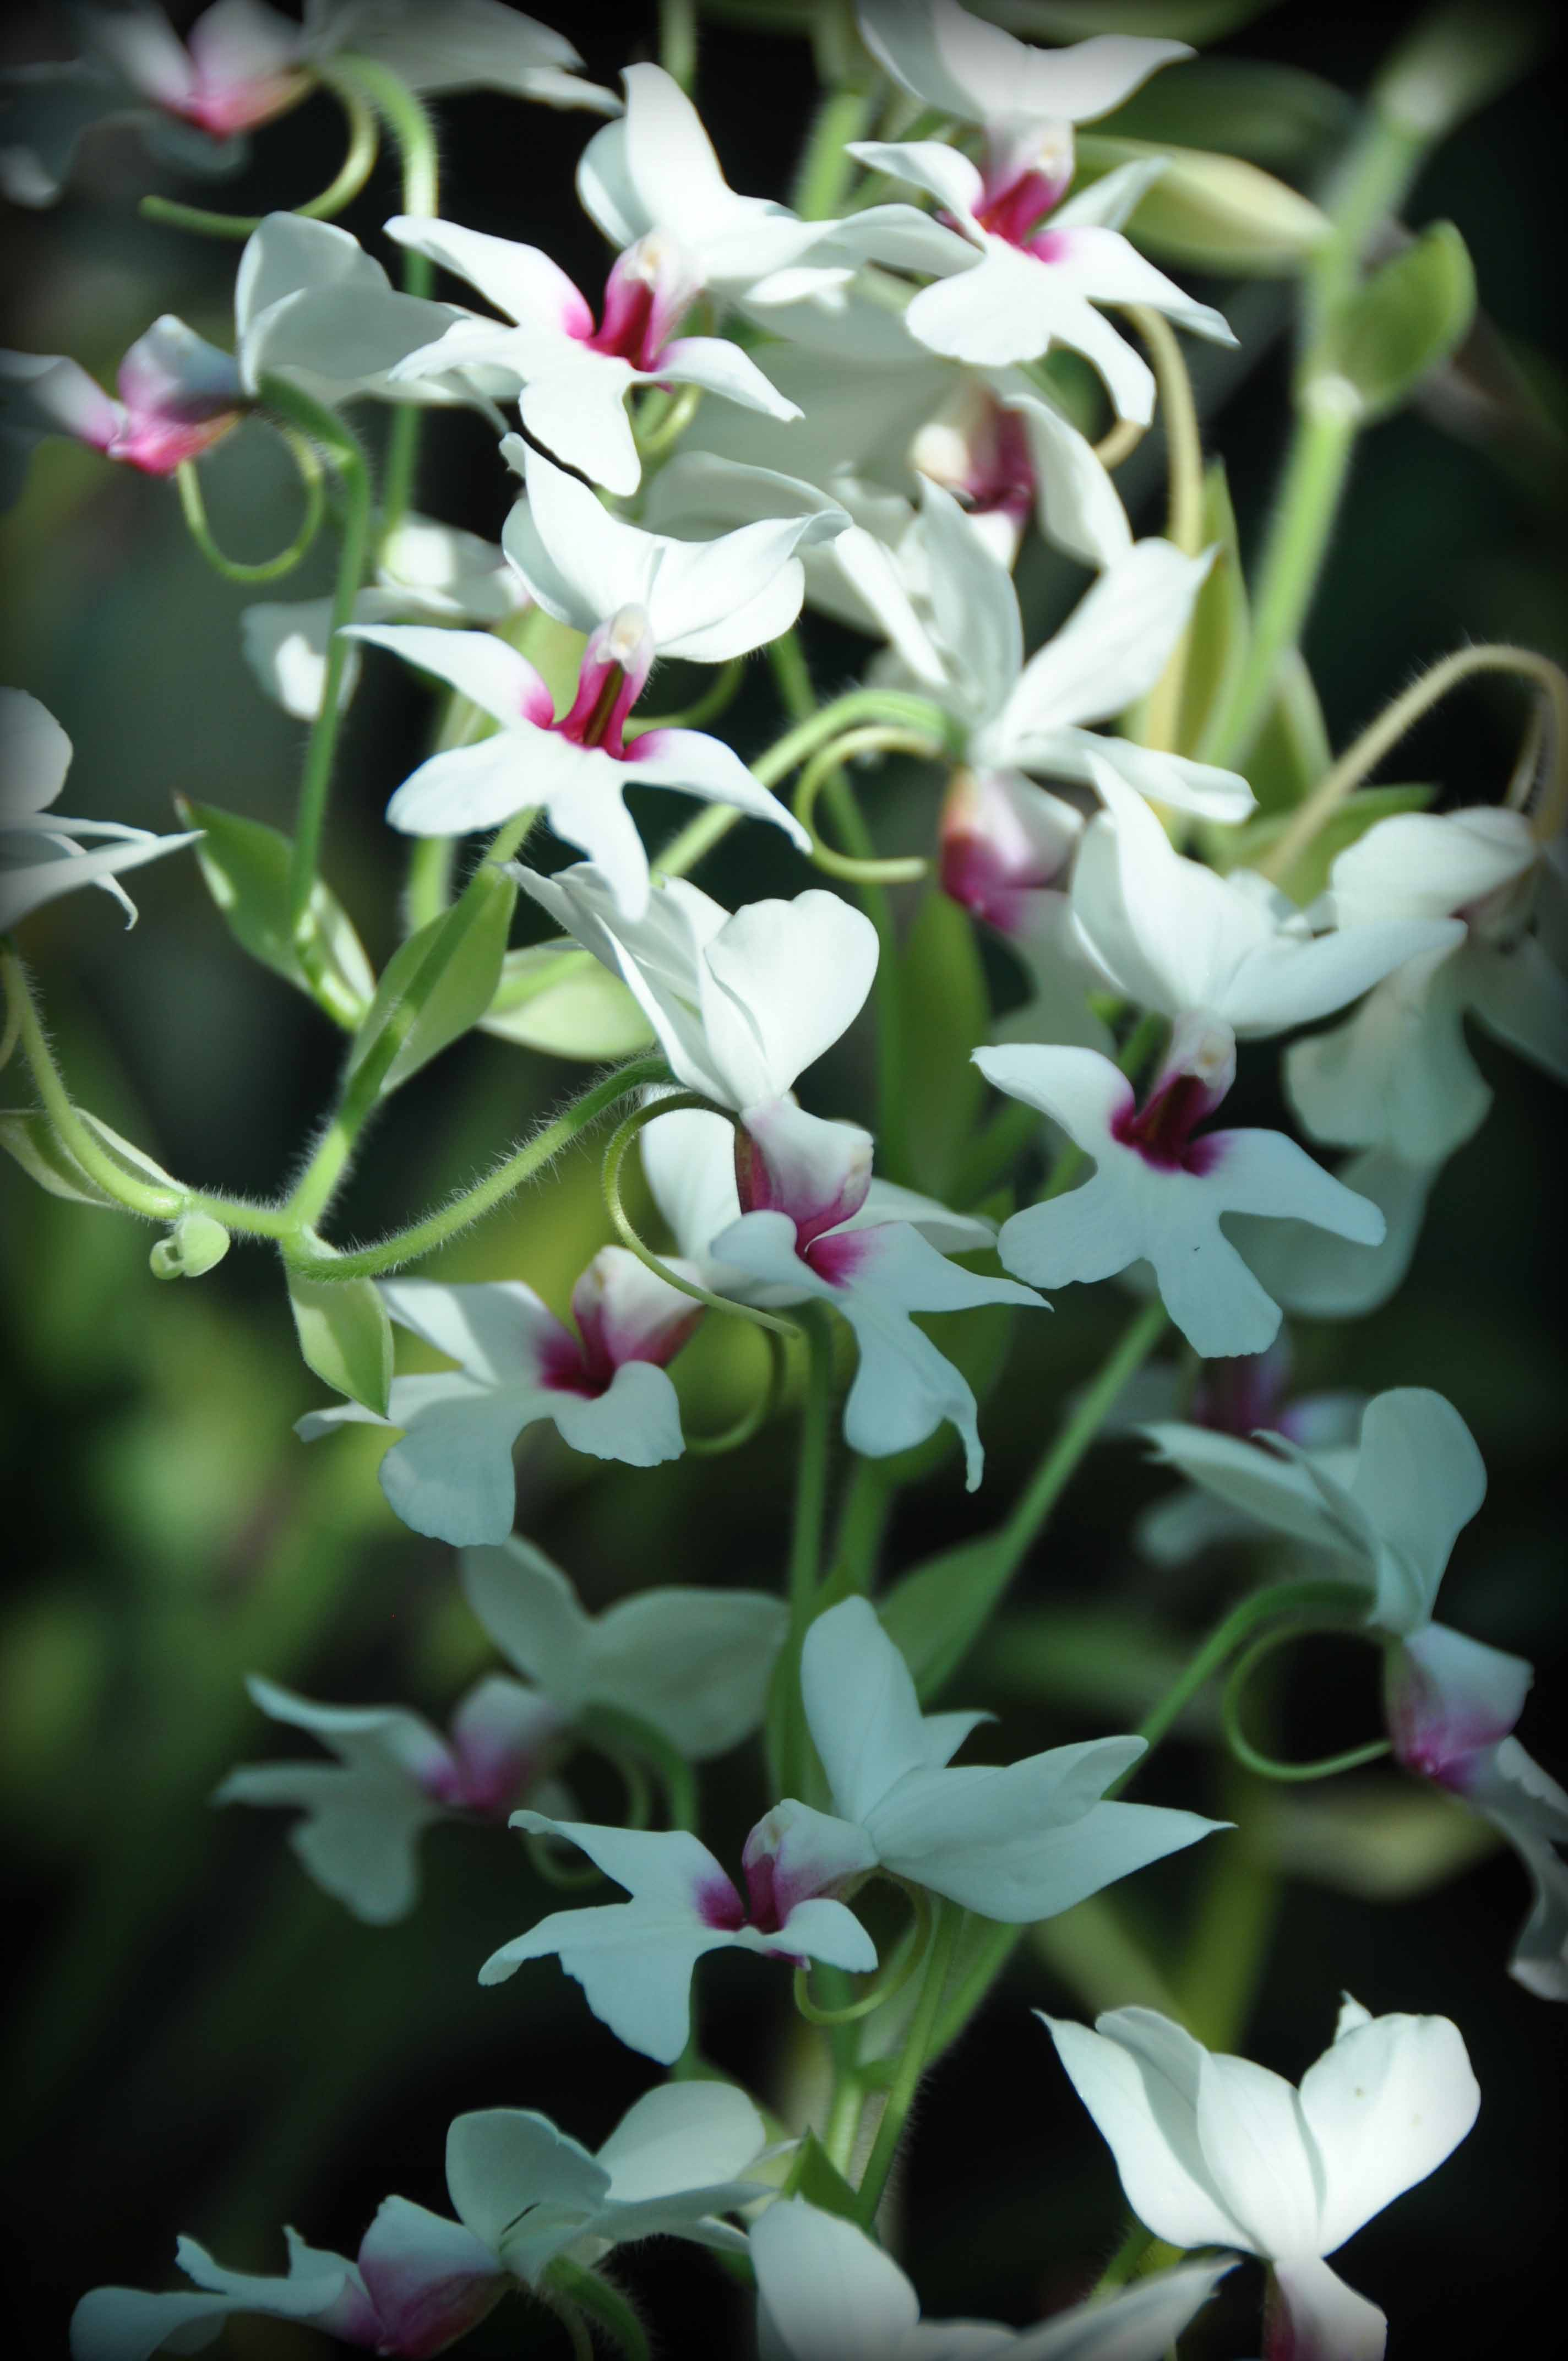 The ultimate Orchid Showcase